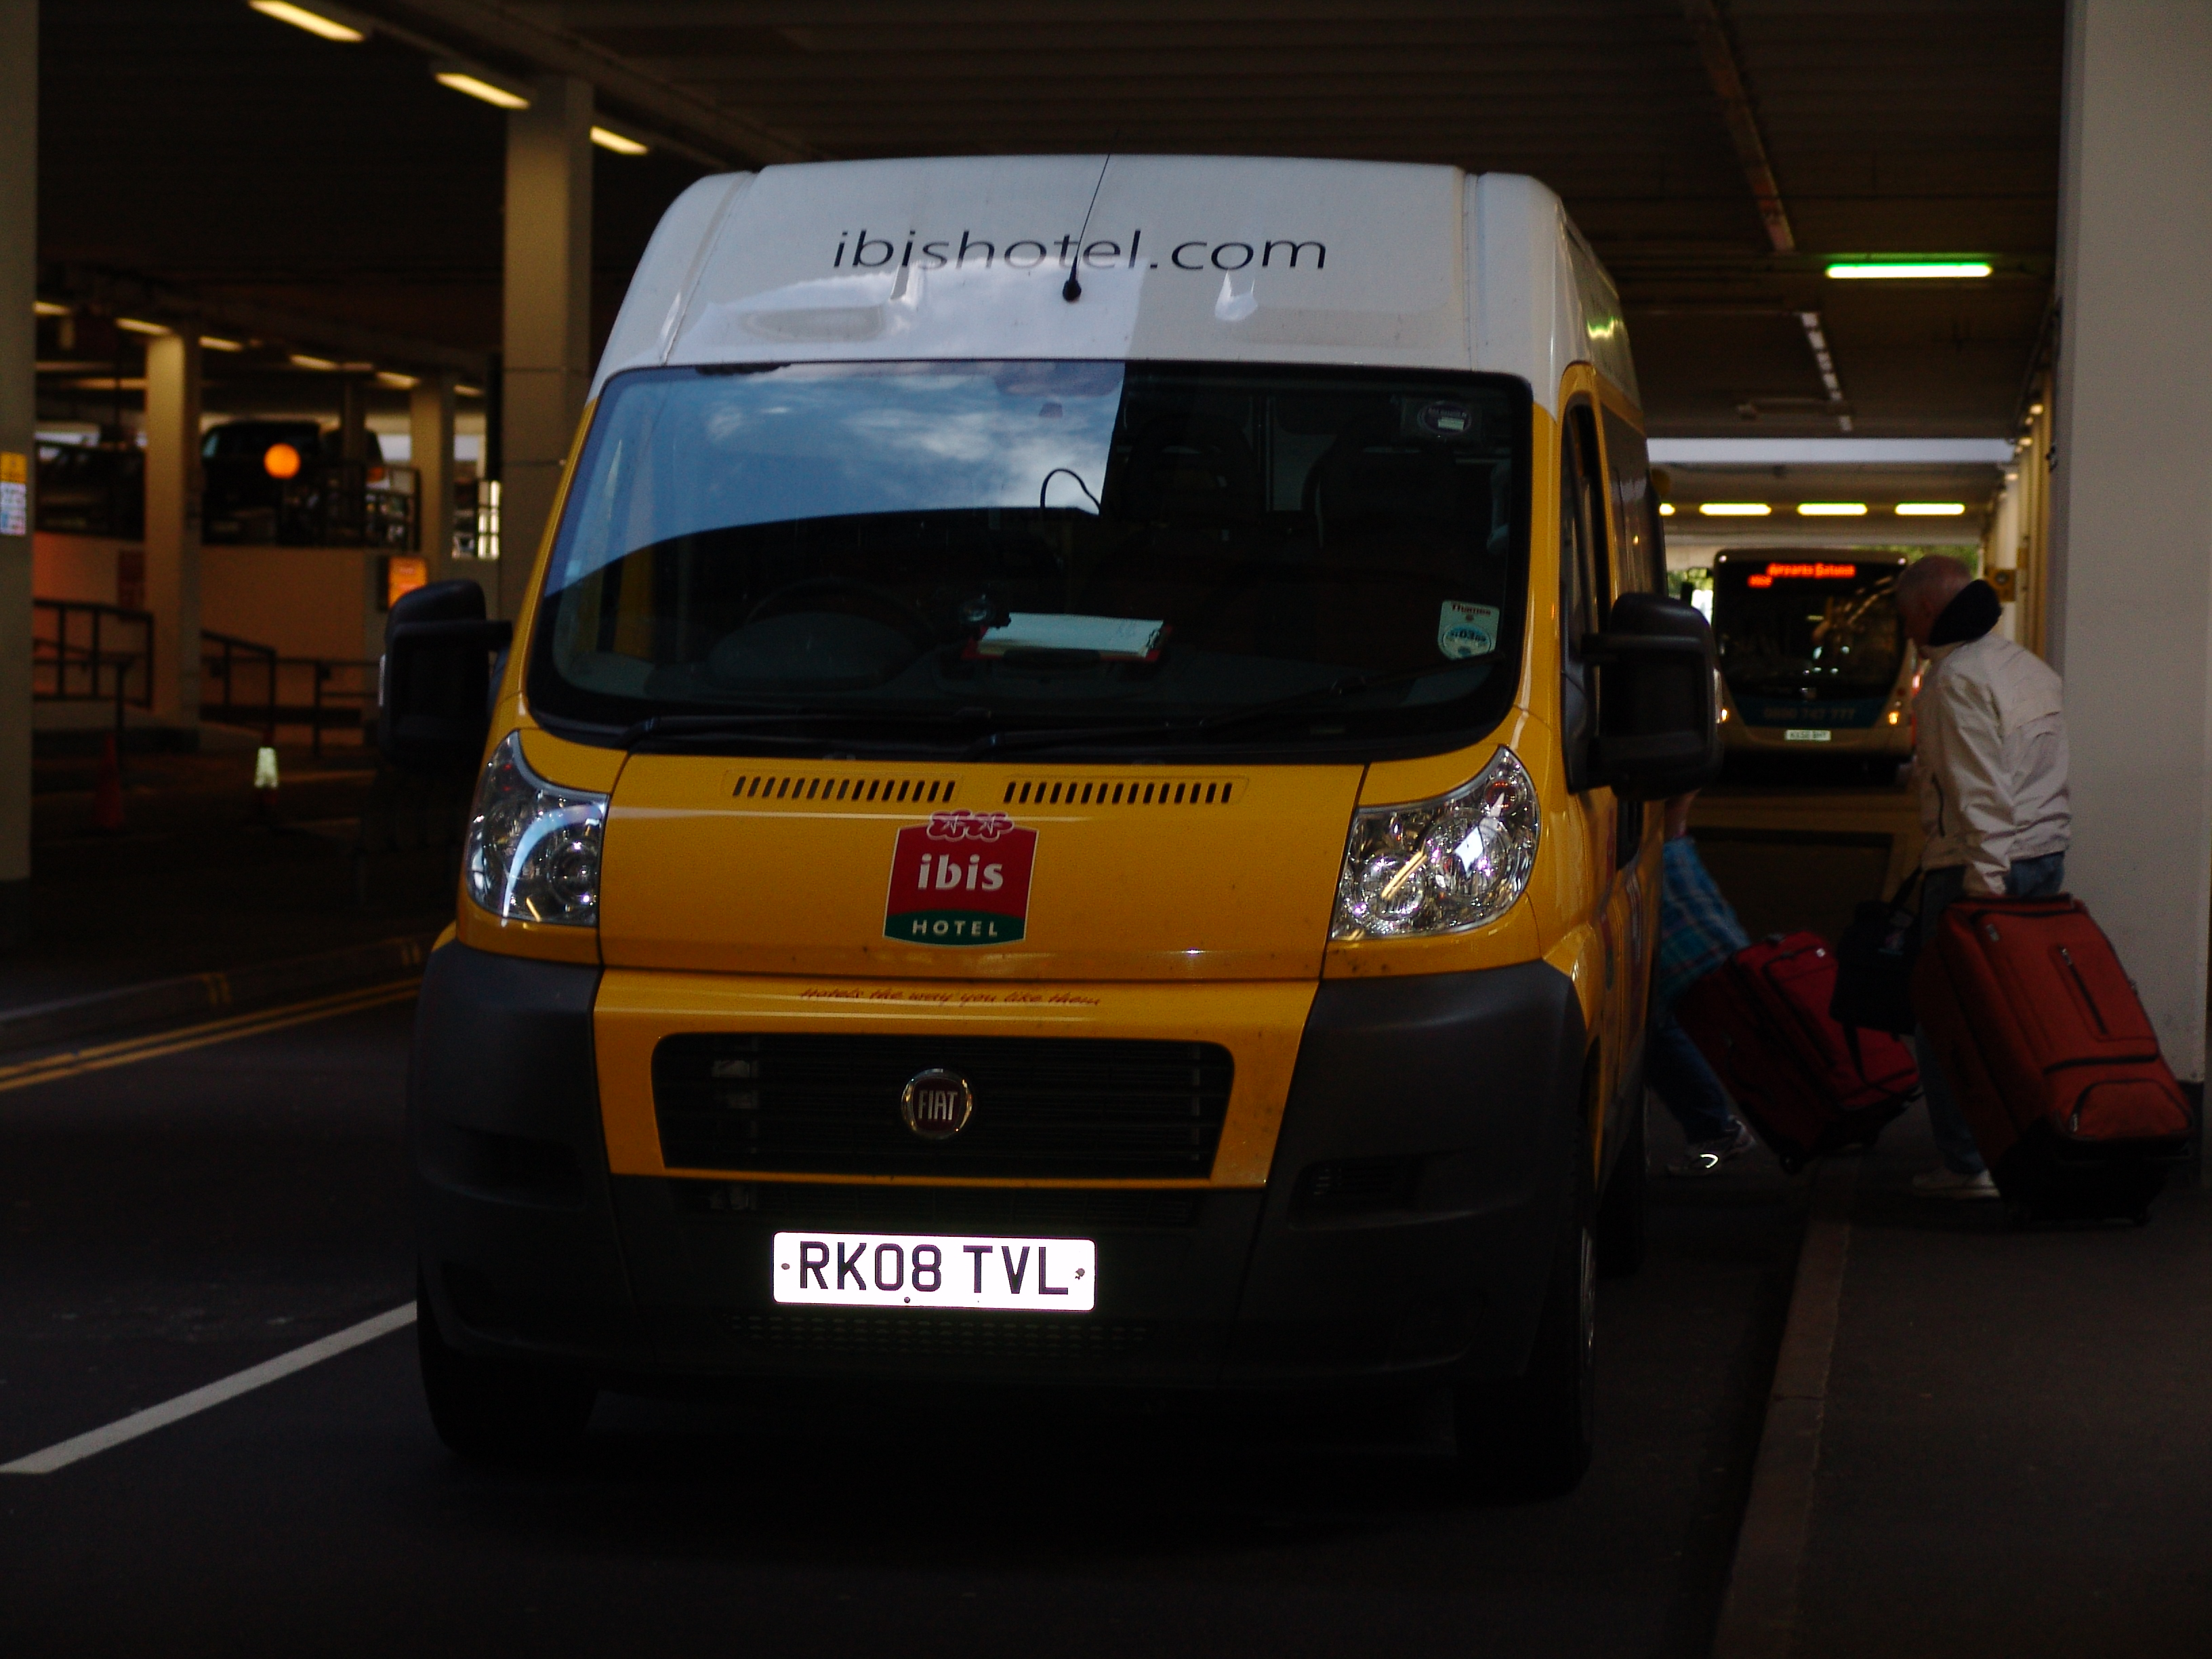 Hotel Transfers From London Gatwick Airport